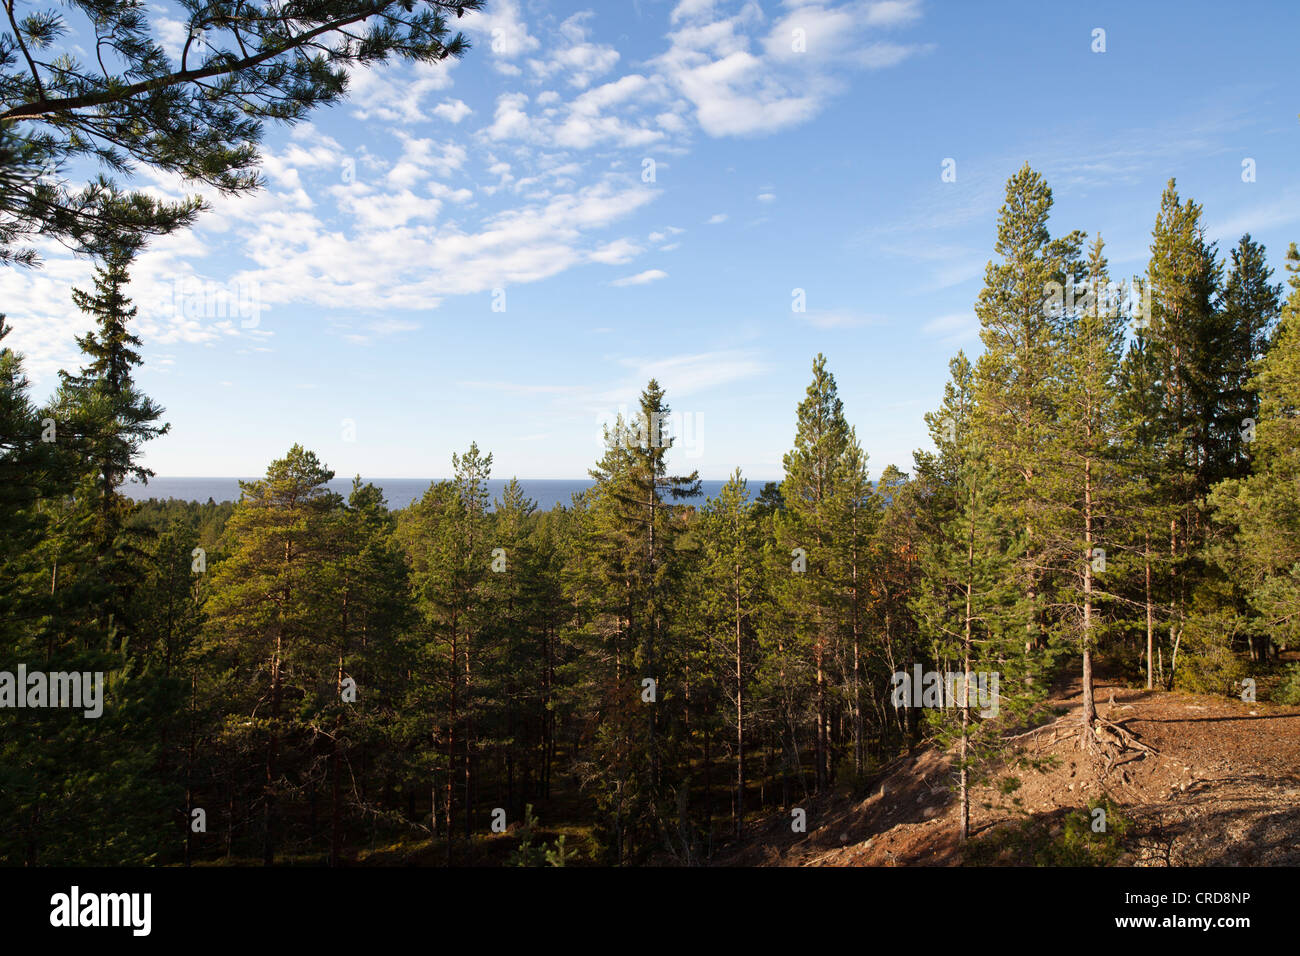 View from Runtelinharju esker , an old seashore . Sightseeing site to sea , Finland - Stock Image